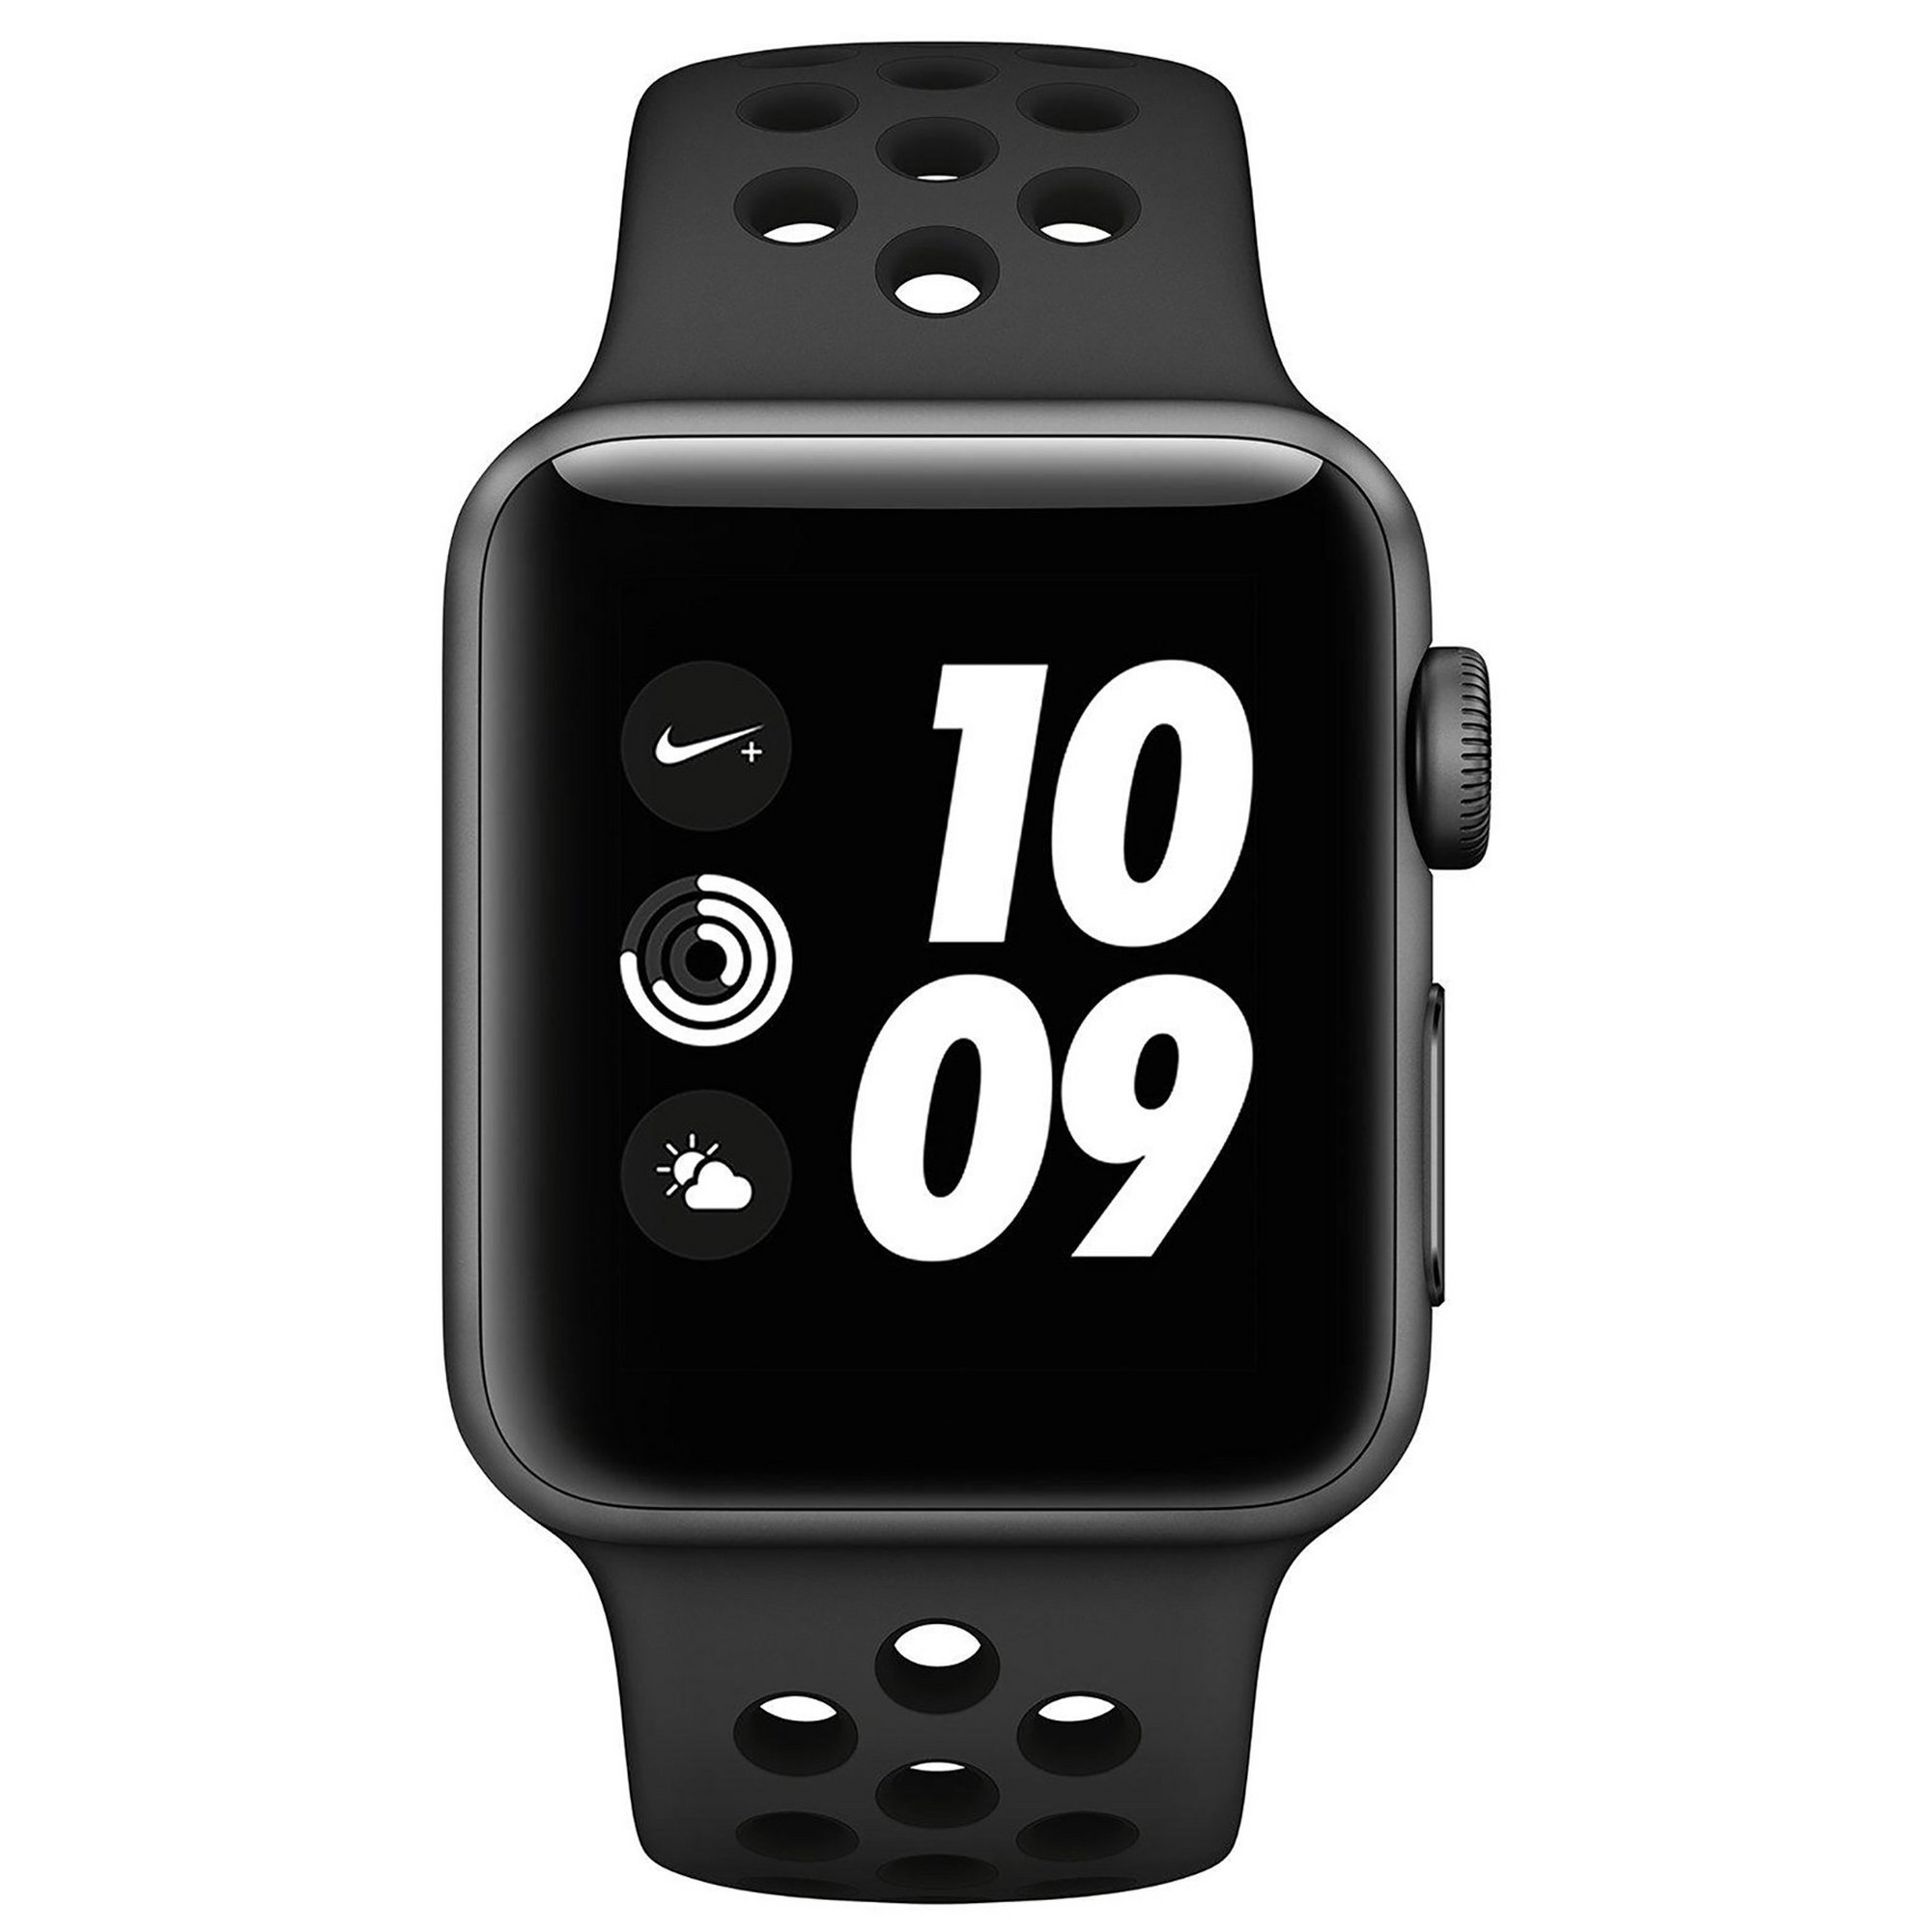 Image of Apple Watch NikePlus Series 3 38mm GPS Watch